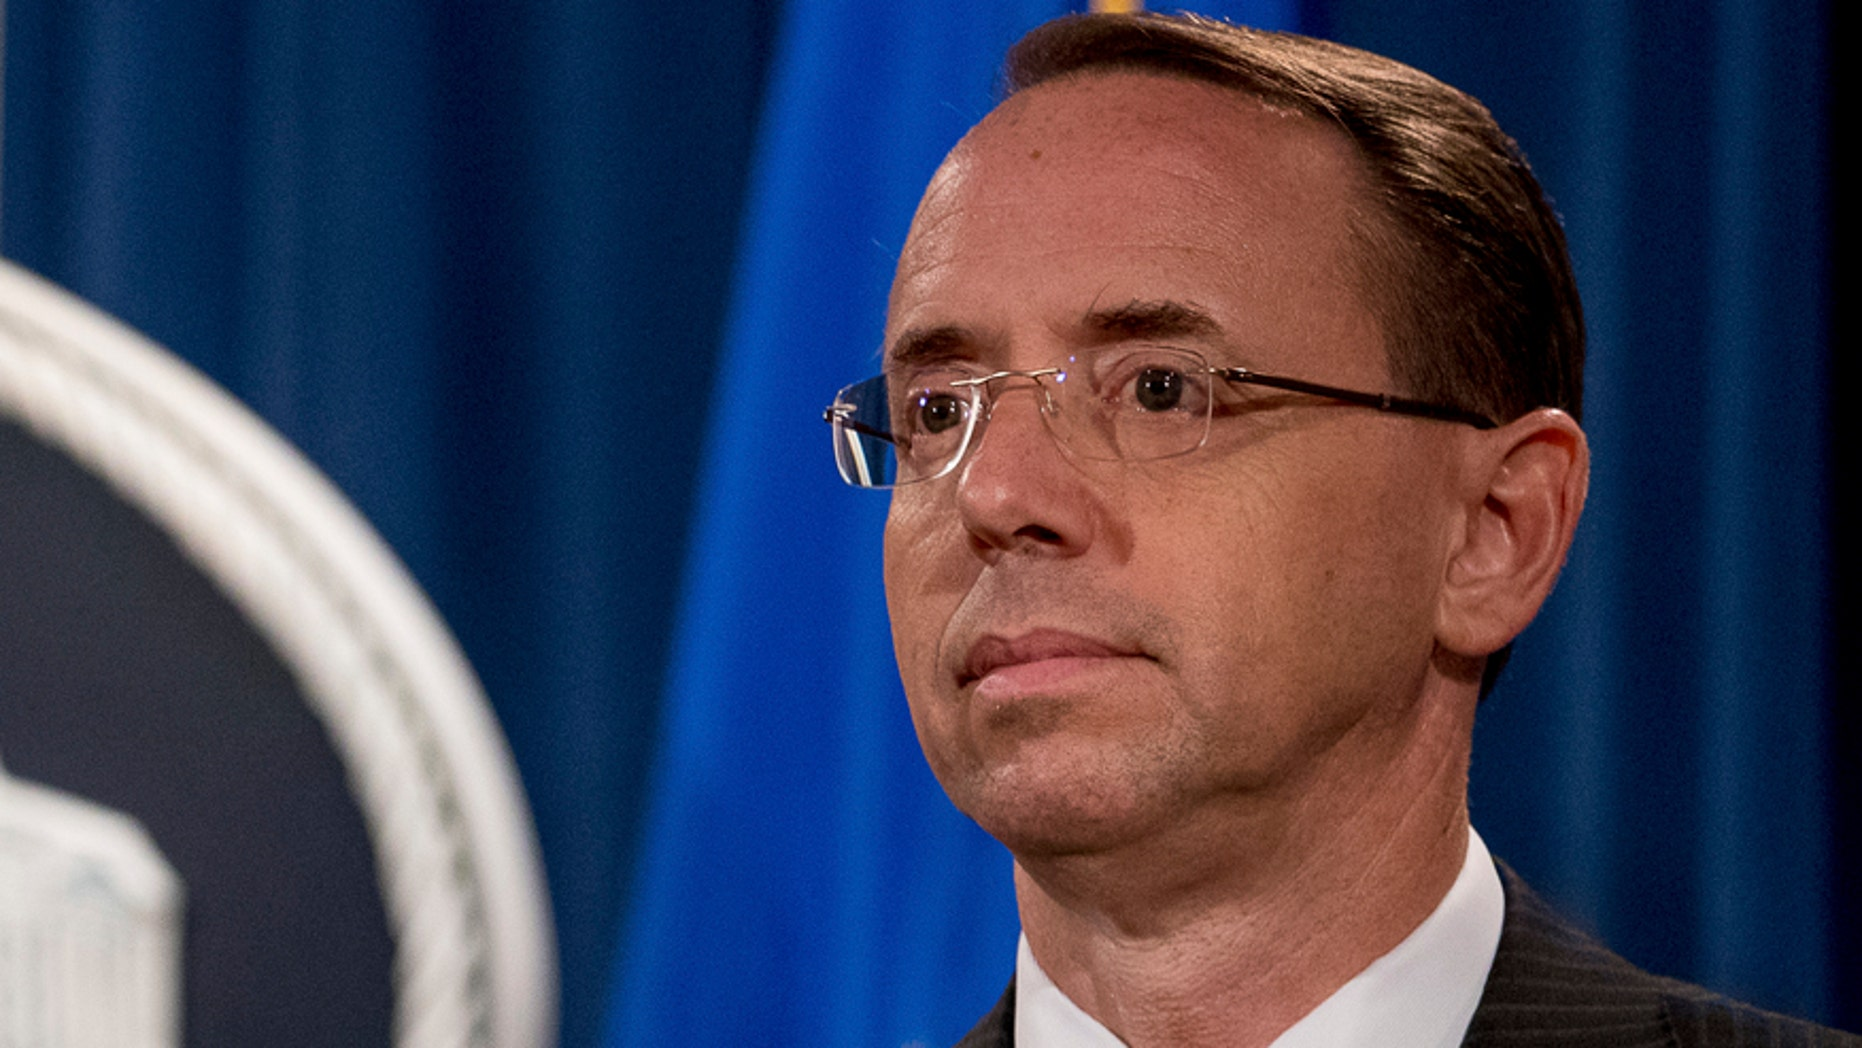 Deputy Attorney General Rod Rosenstein appointed Special Counsel Robert Mueller to investigate Russian meddling and potential collusion with Trump campaign associates in the 2016 presidential election.